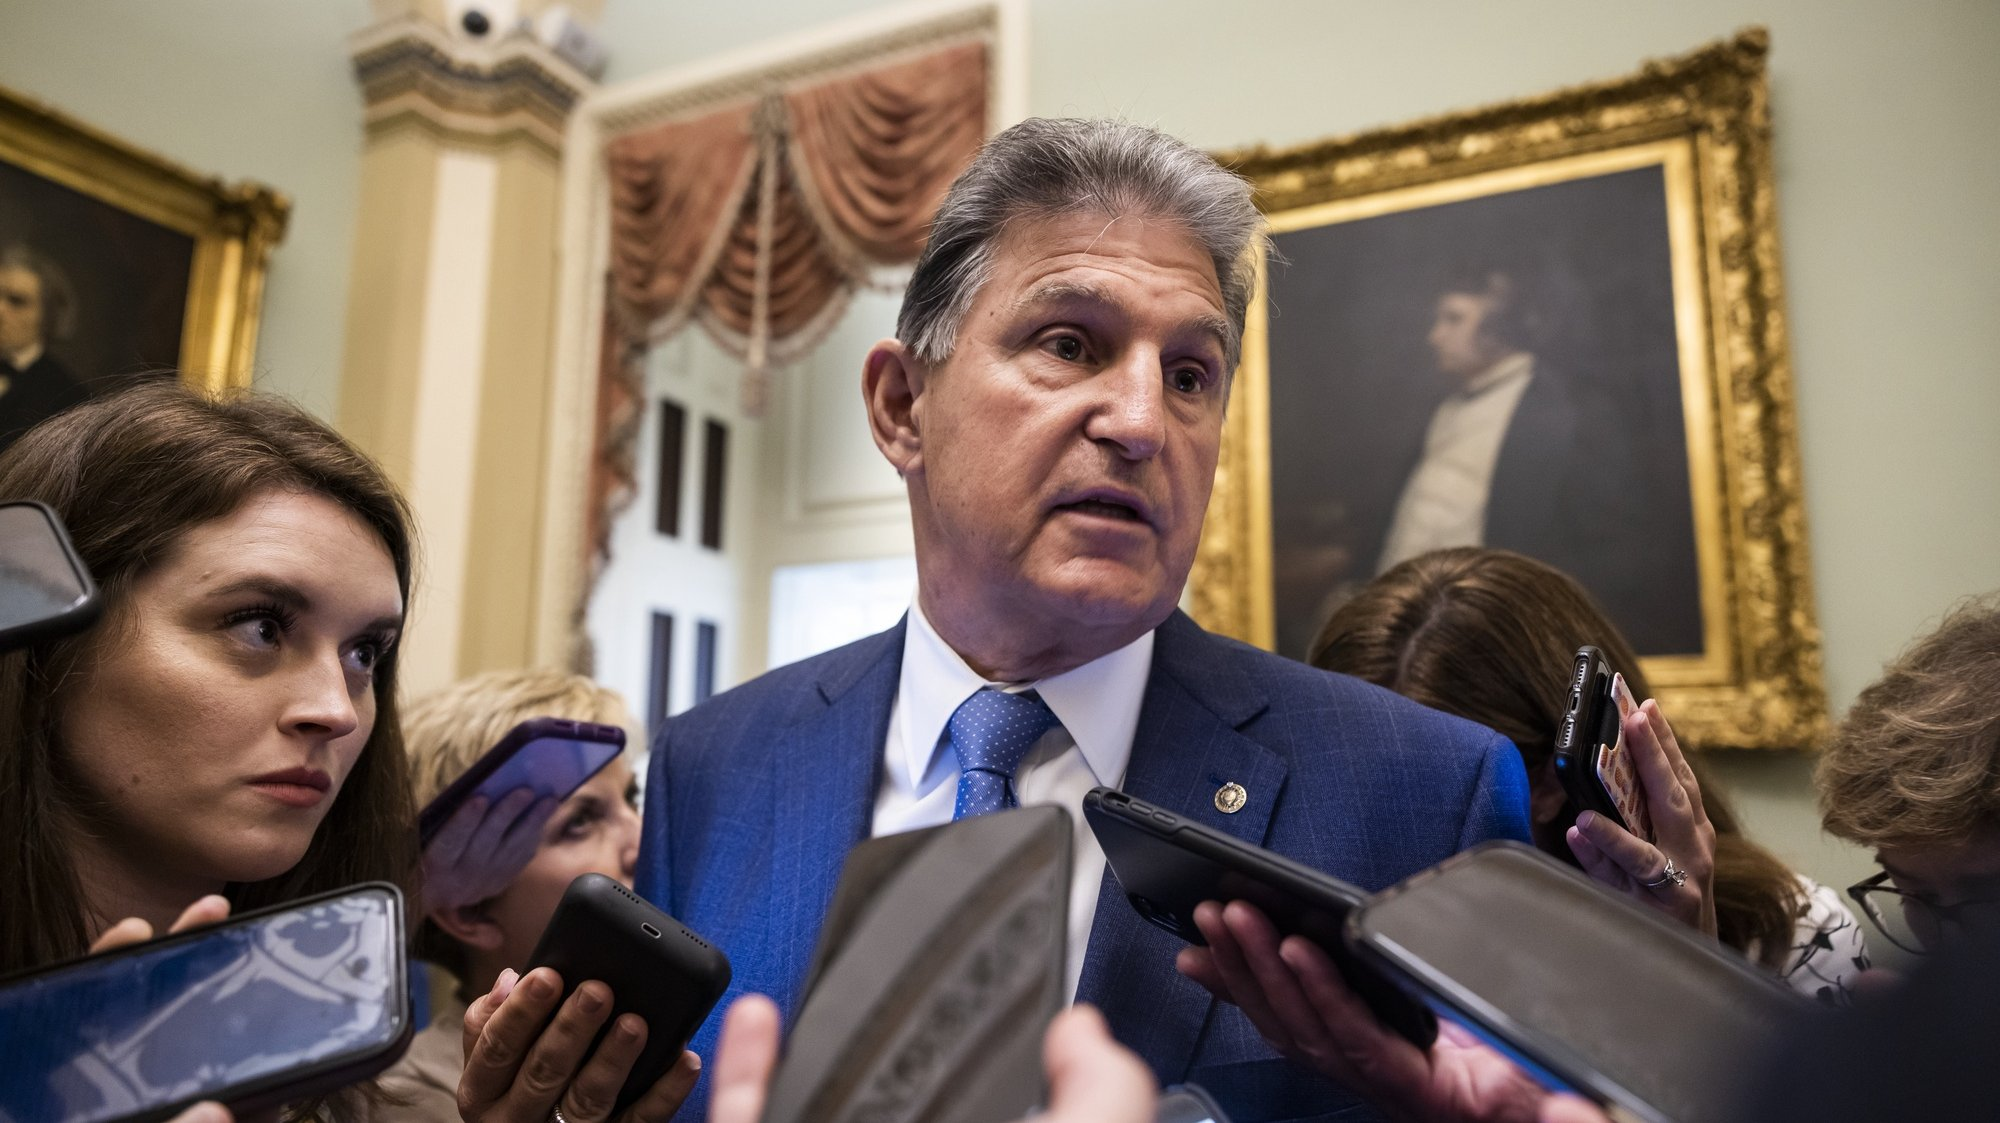 epa09344690 Democratic Senator from West Virginia Joe Manchin speaks to reporters after US President Joe Biden met with lawmakers seeking their support for his two-bill approach to infrastructure spending in the US Capitol in Washington, DC, USA, 14 July 2021.  EPA/JIM LO SCALZO